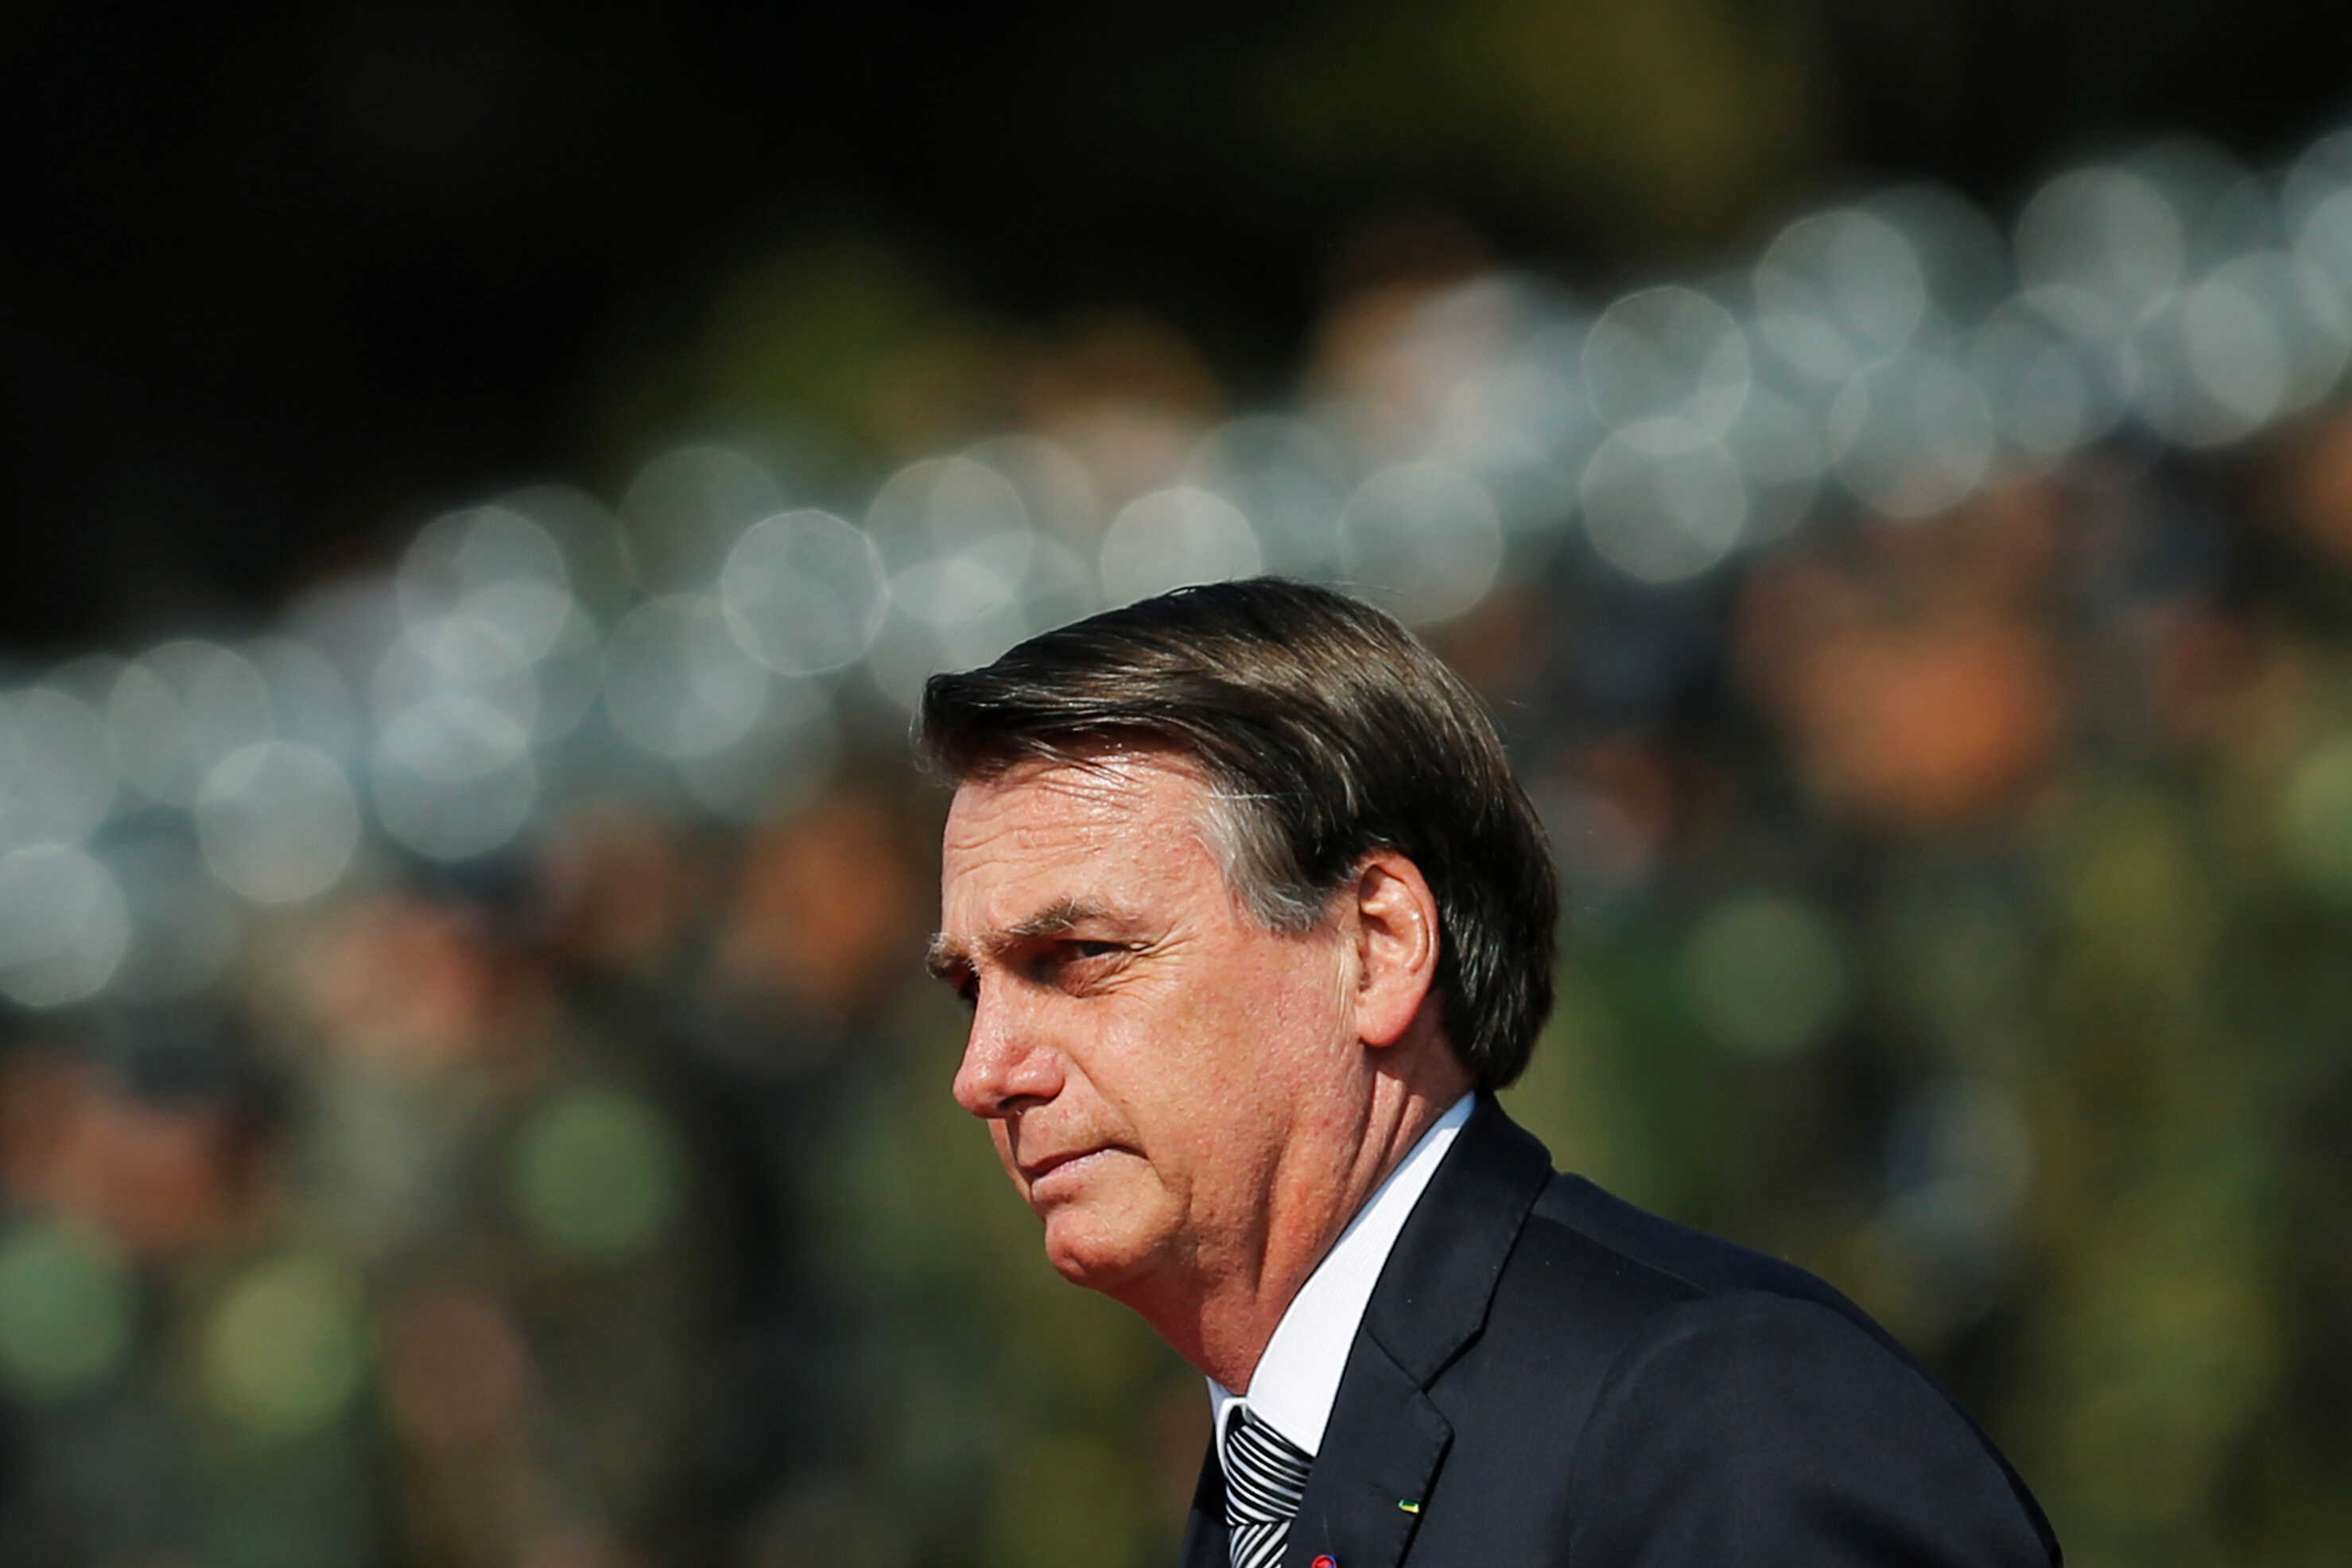 Bolsonaro will only accept €18 mill Amazon aid if Macron retracts 'insults'